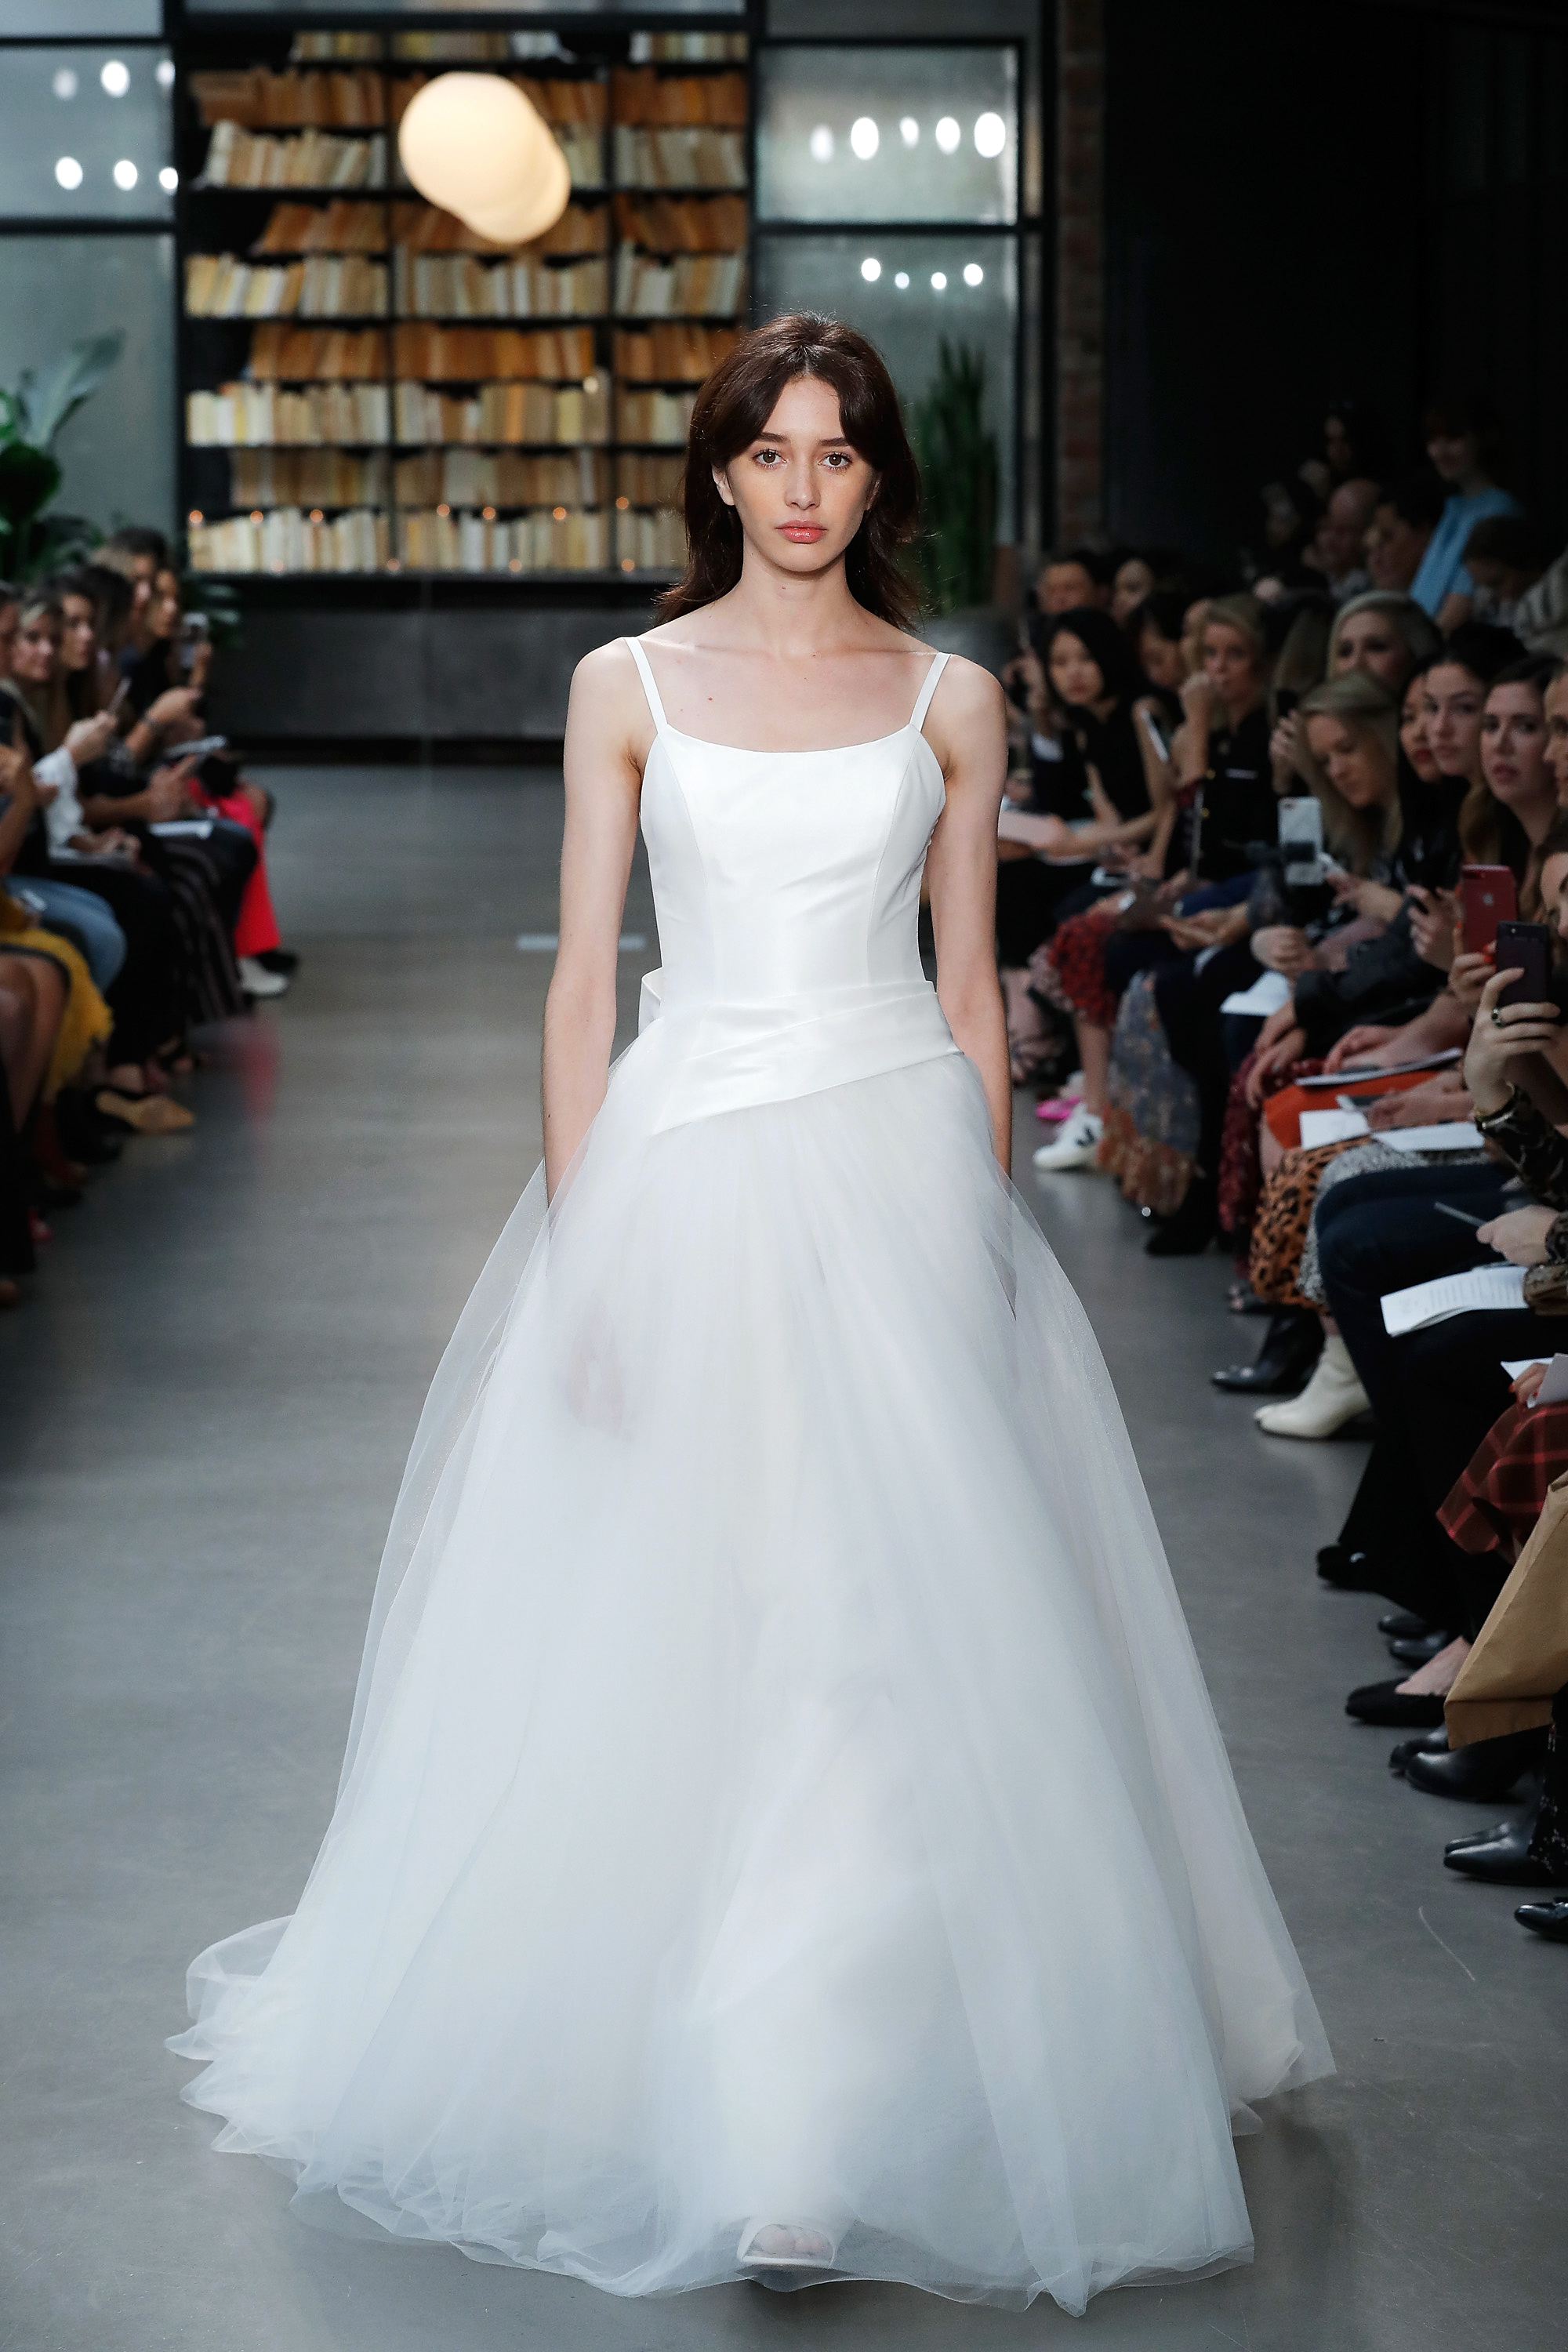 nouvelle amsale wedding dress spaghetti strap tulle ball gown